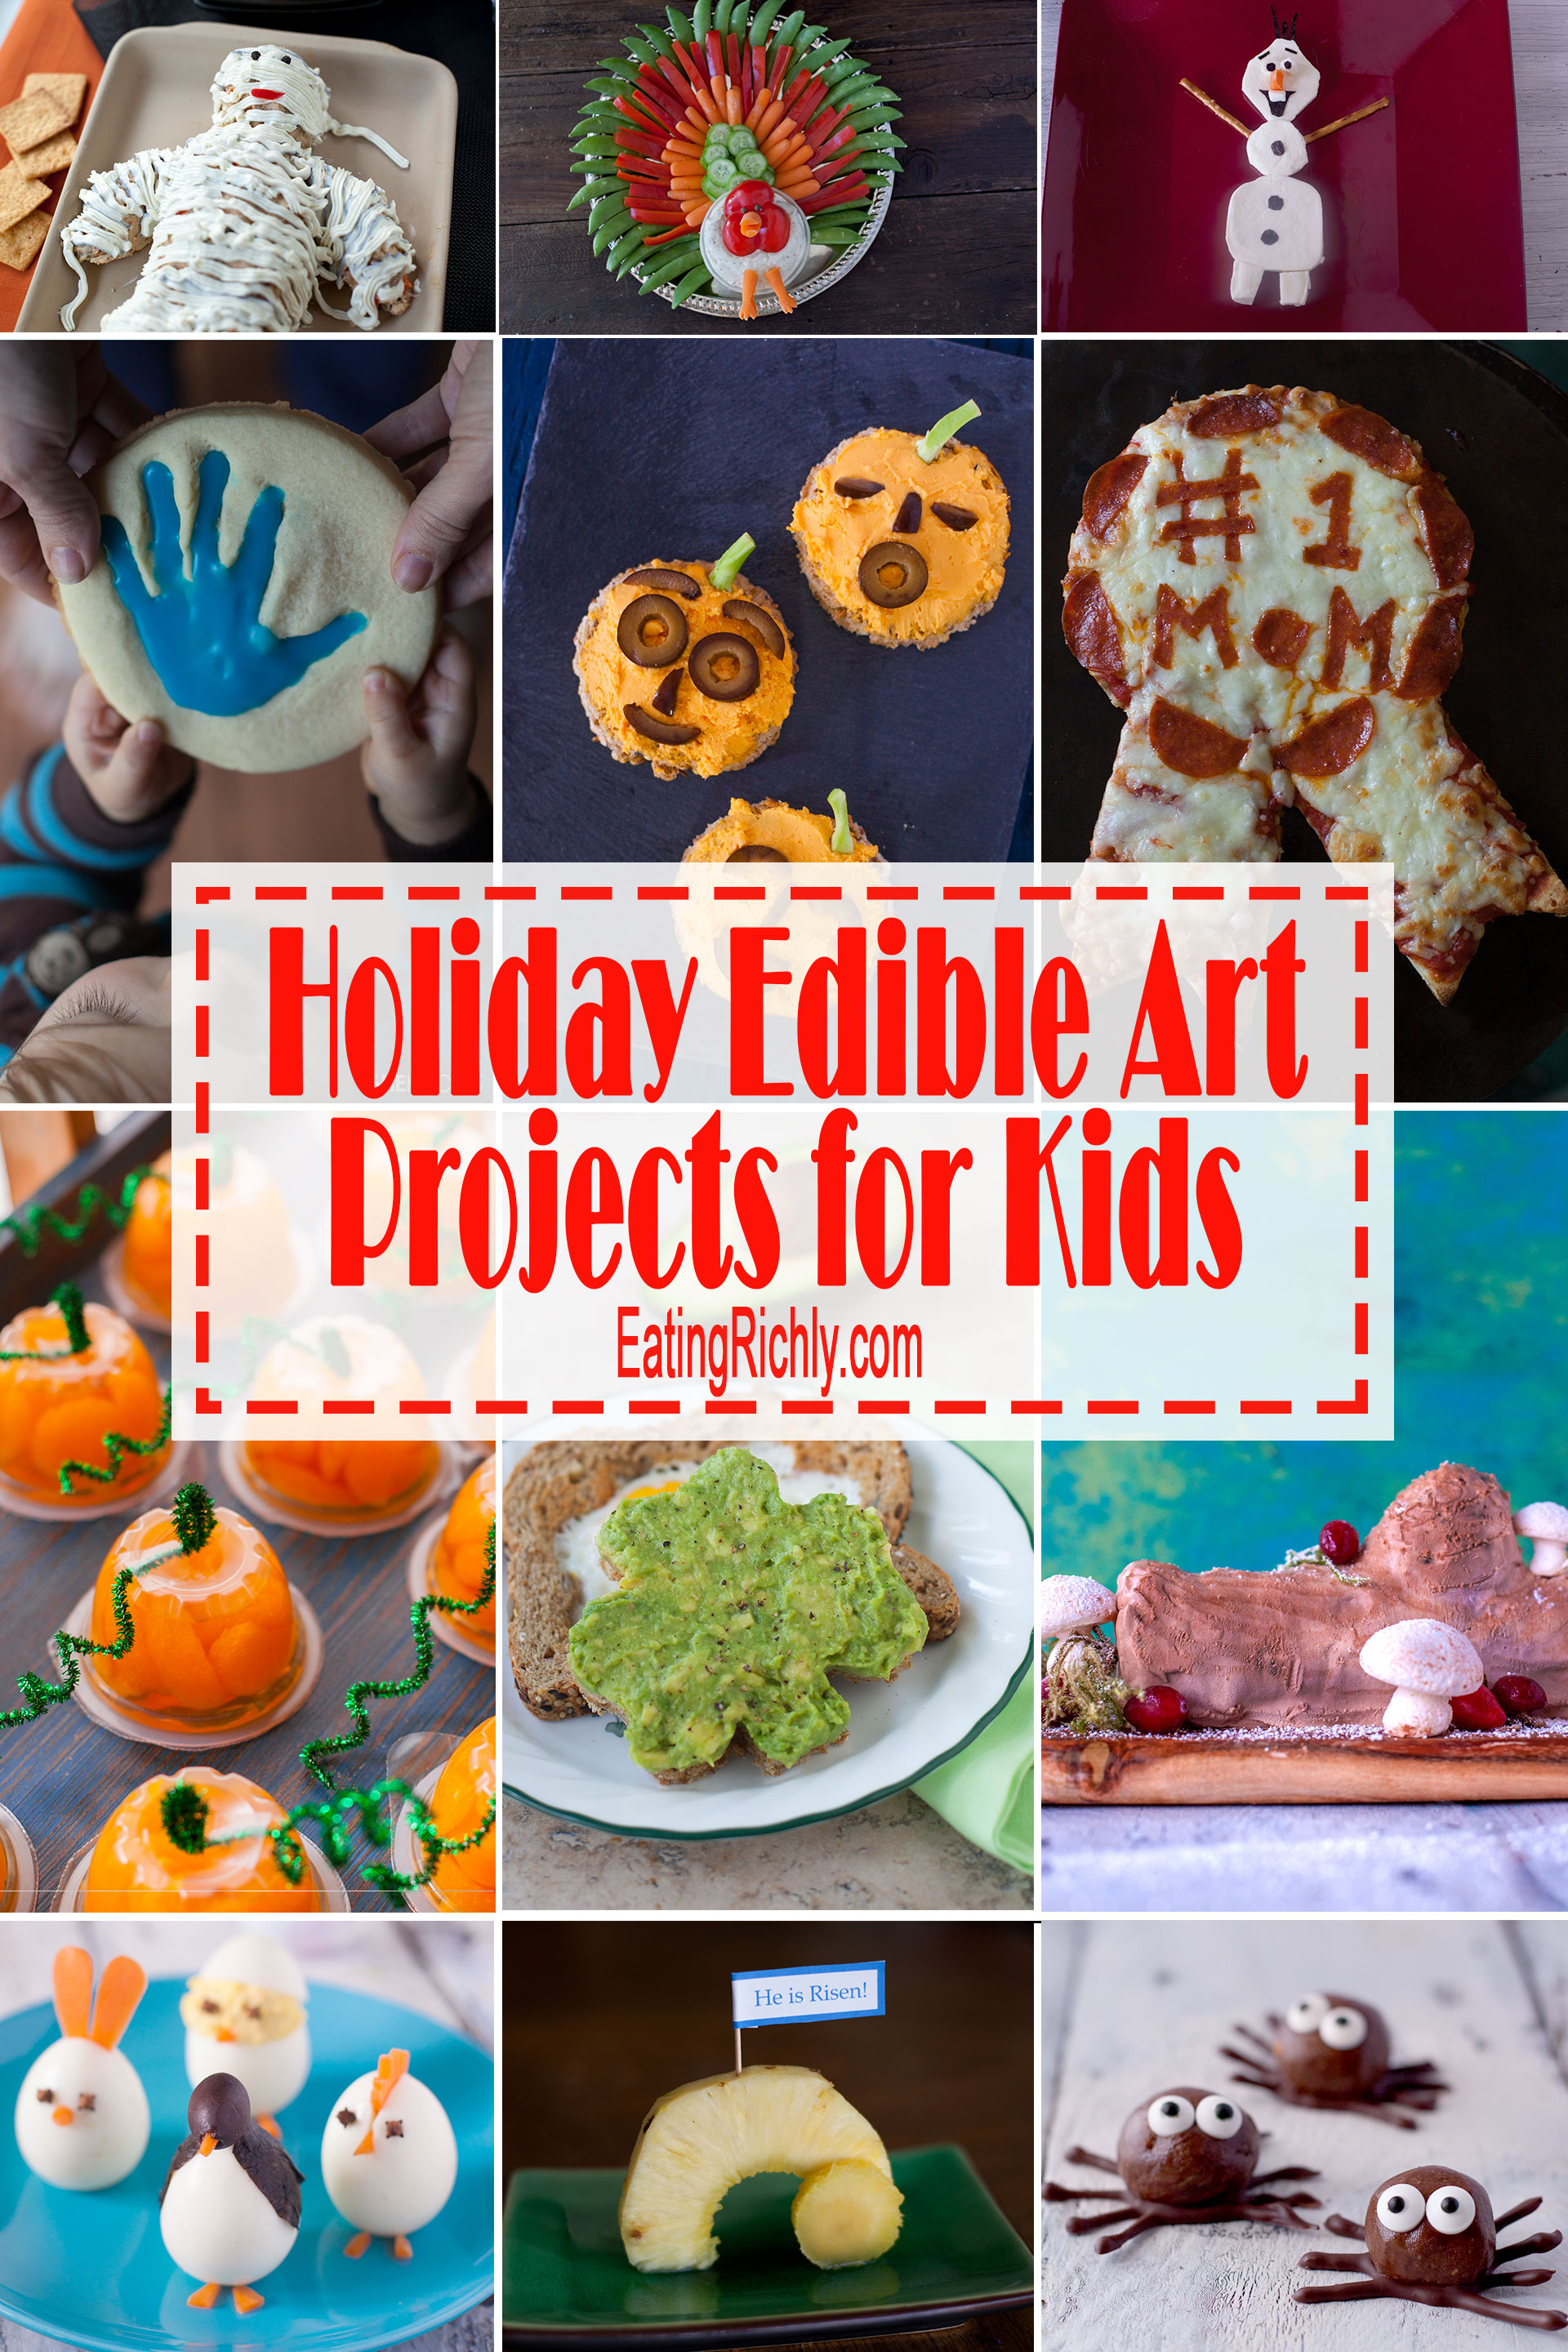 Holiday Edible Art Projects for Kids